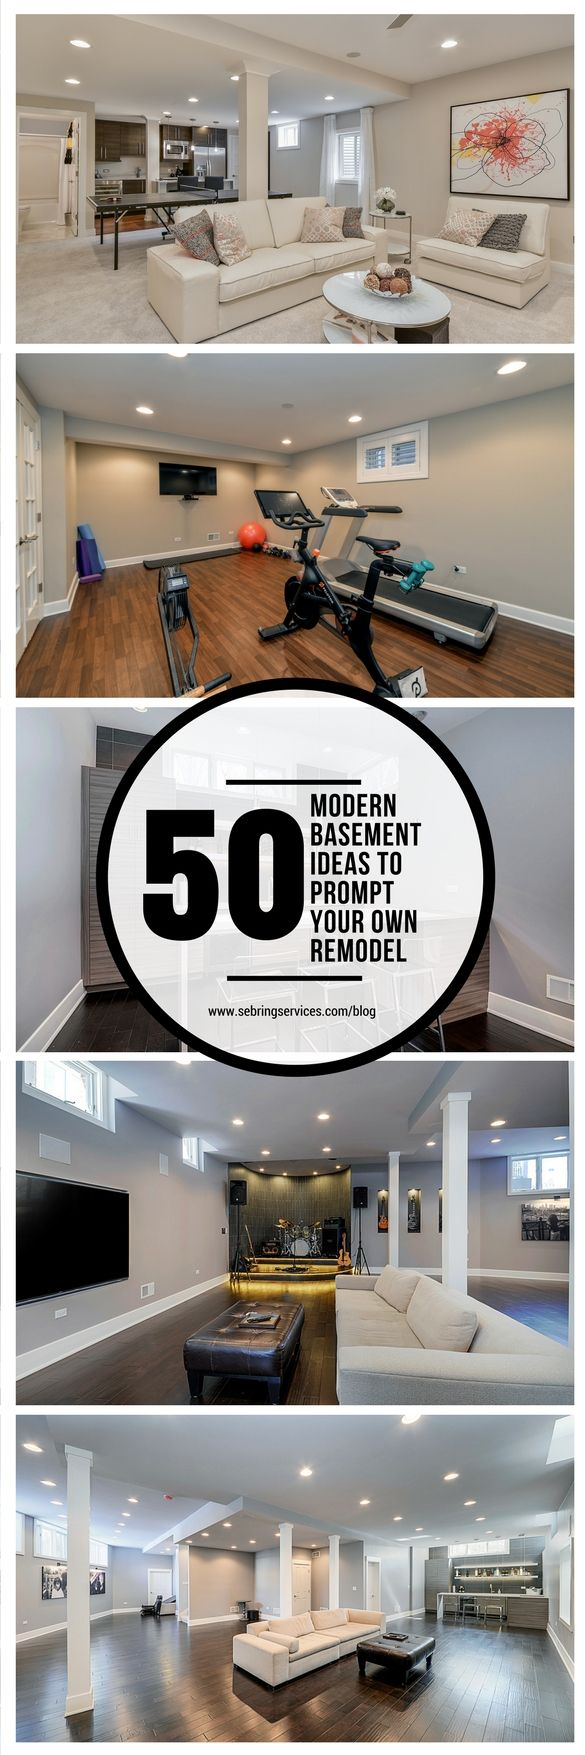 There is no shortage of modern basement ideas to borrow from. Unused basements tend to get filled with every old and unwanted item in the house from worn out furniture to childhood memorabilia. Unfortunately, this is letting precious square footage go to waste. The basement is a perfect space that could be transformed into a warm and welcoming area for your family and friends to enjoy.